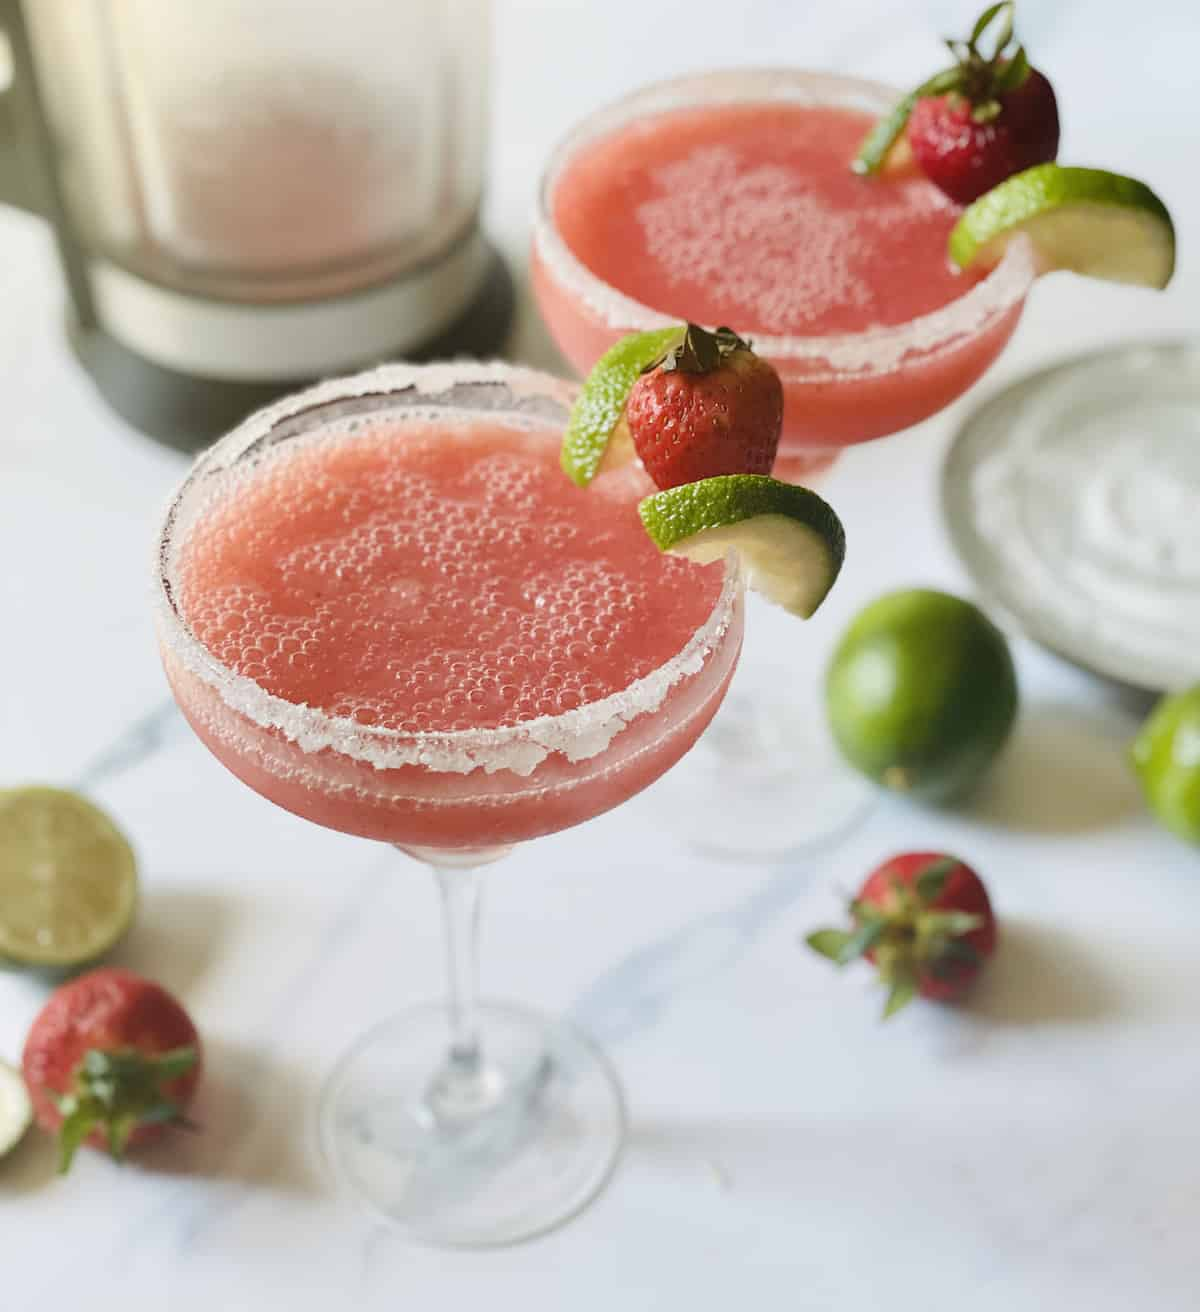 blended margaritas in glasses garnished with limes and strawberries